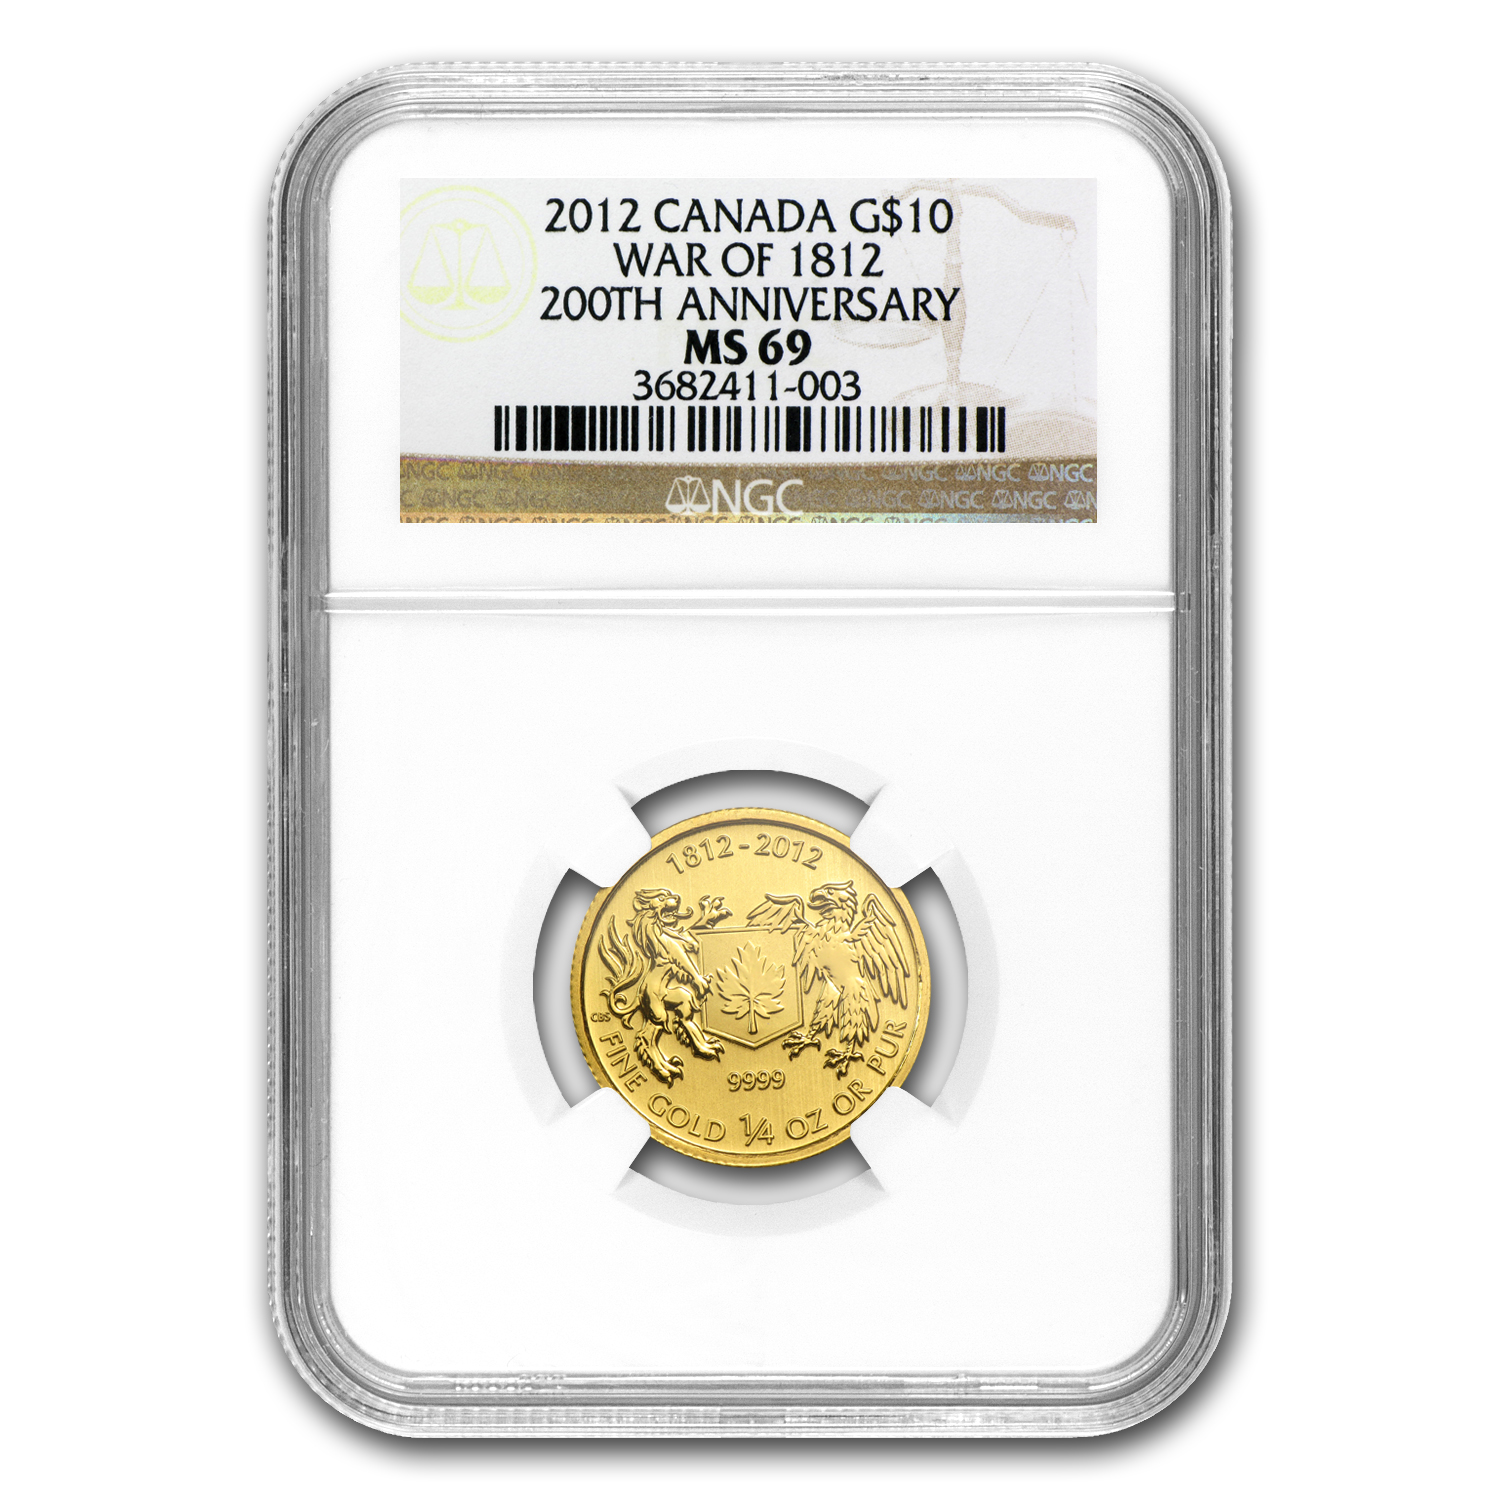 2012 Canada 1/4 oz Gold $10 War of 1812 MS-69 NGC